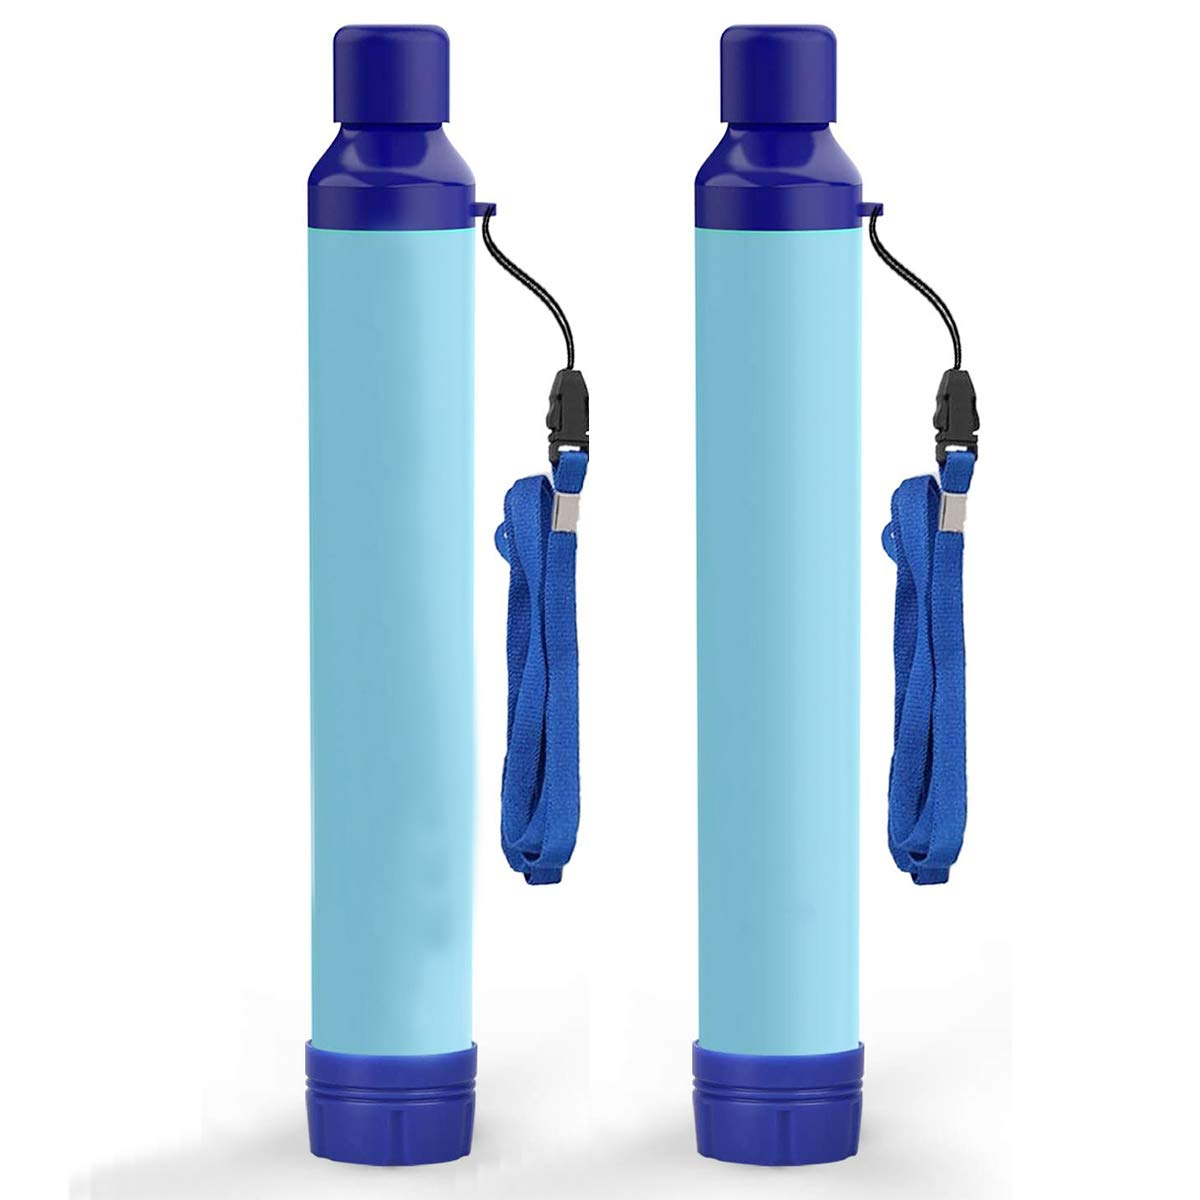 Kerrogee Portable Water Filter Straw,396 Gallon Filtration Capacity, 0.01 Micron Filtration Accuracy Survival Water Filter,Easy Carry for Camping,Backpacking, 2 Pack